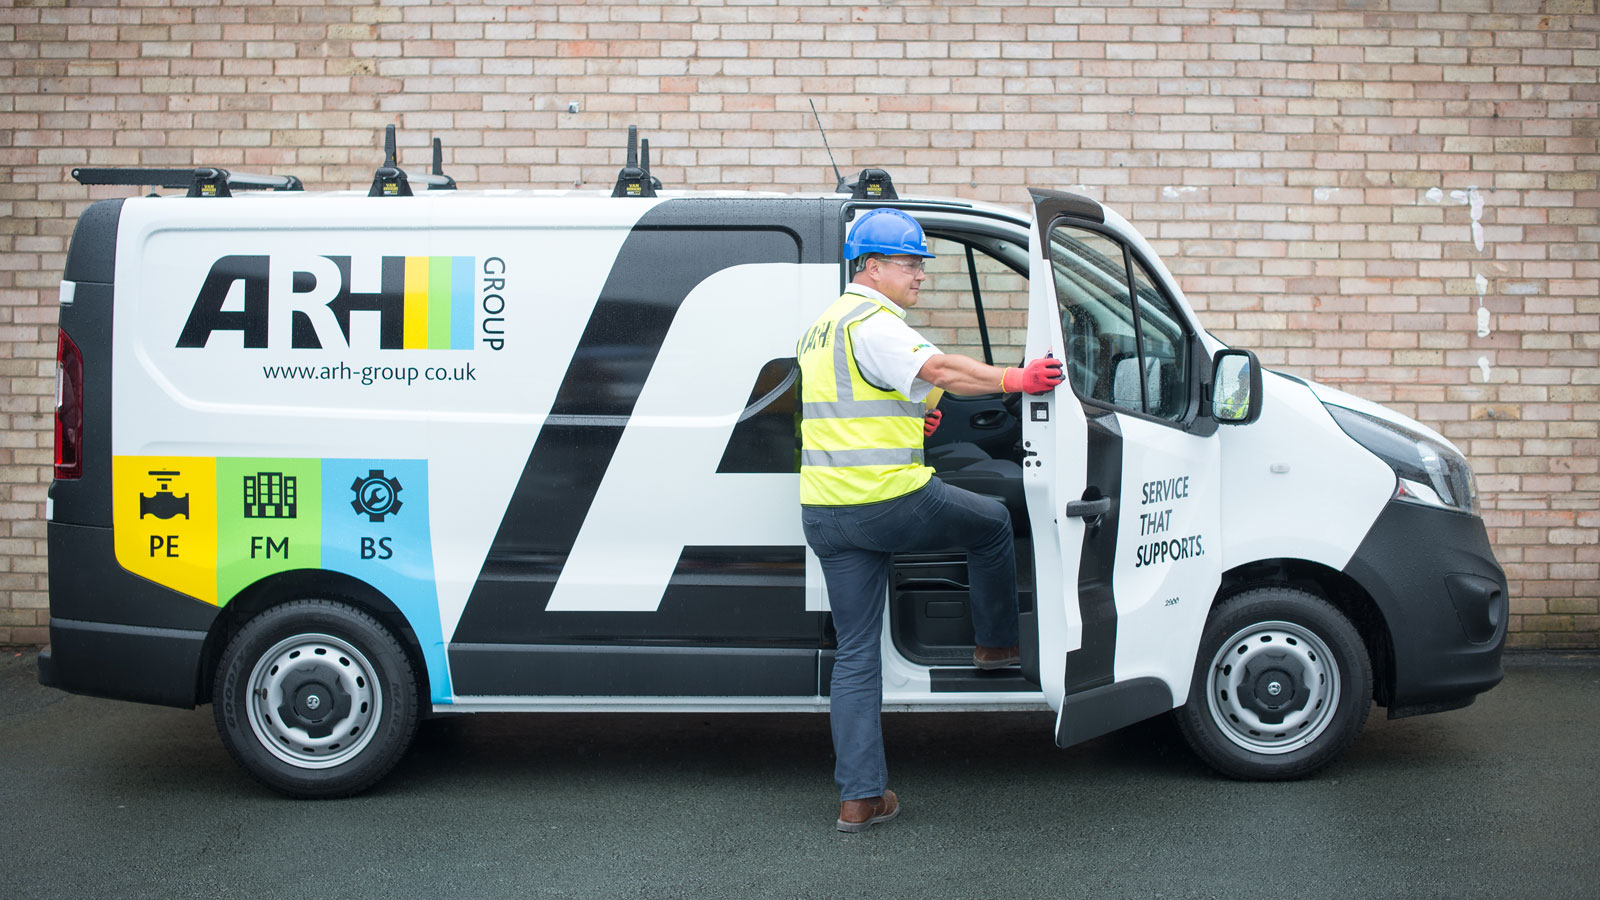 Leading FM, Building Services & Process Engineering company ARH commissioned Shropshire-based branding experts Reech to create a new brand.